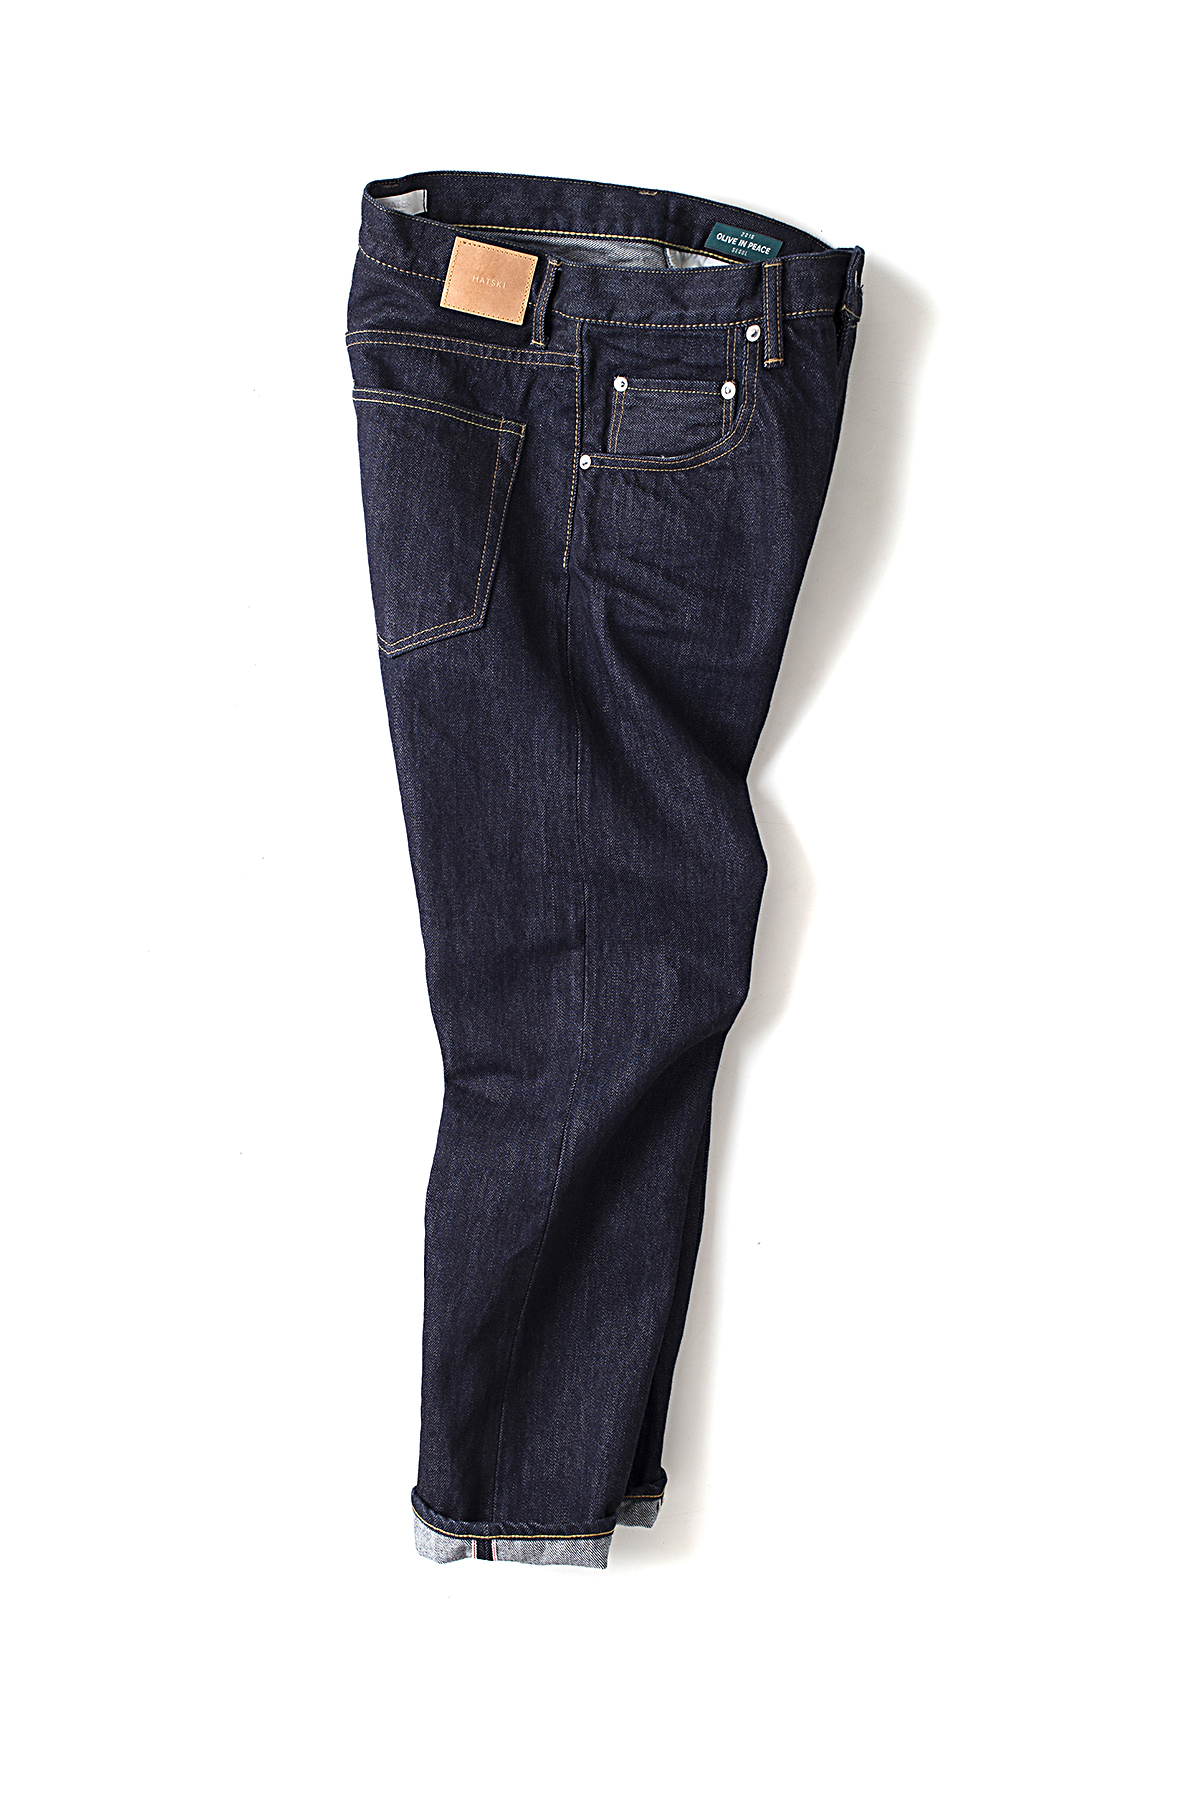 HATSKI : Loose Tapered Denim